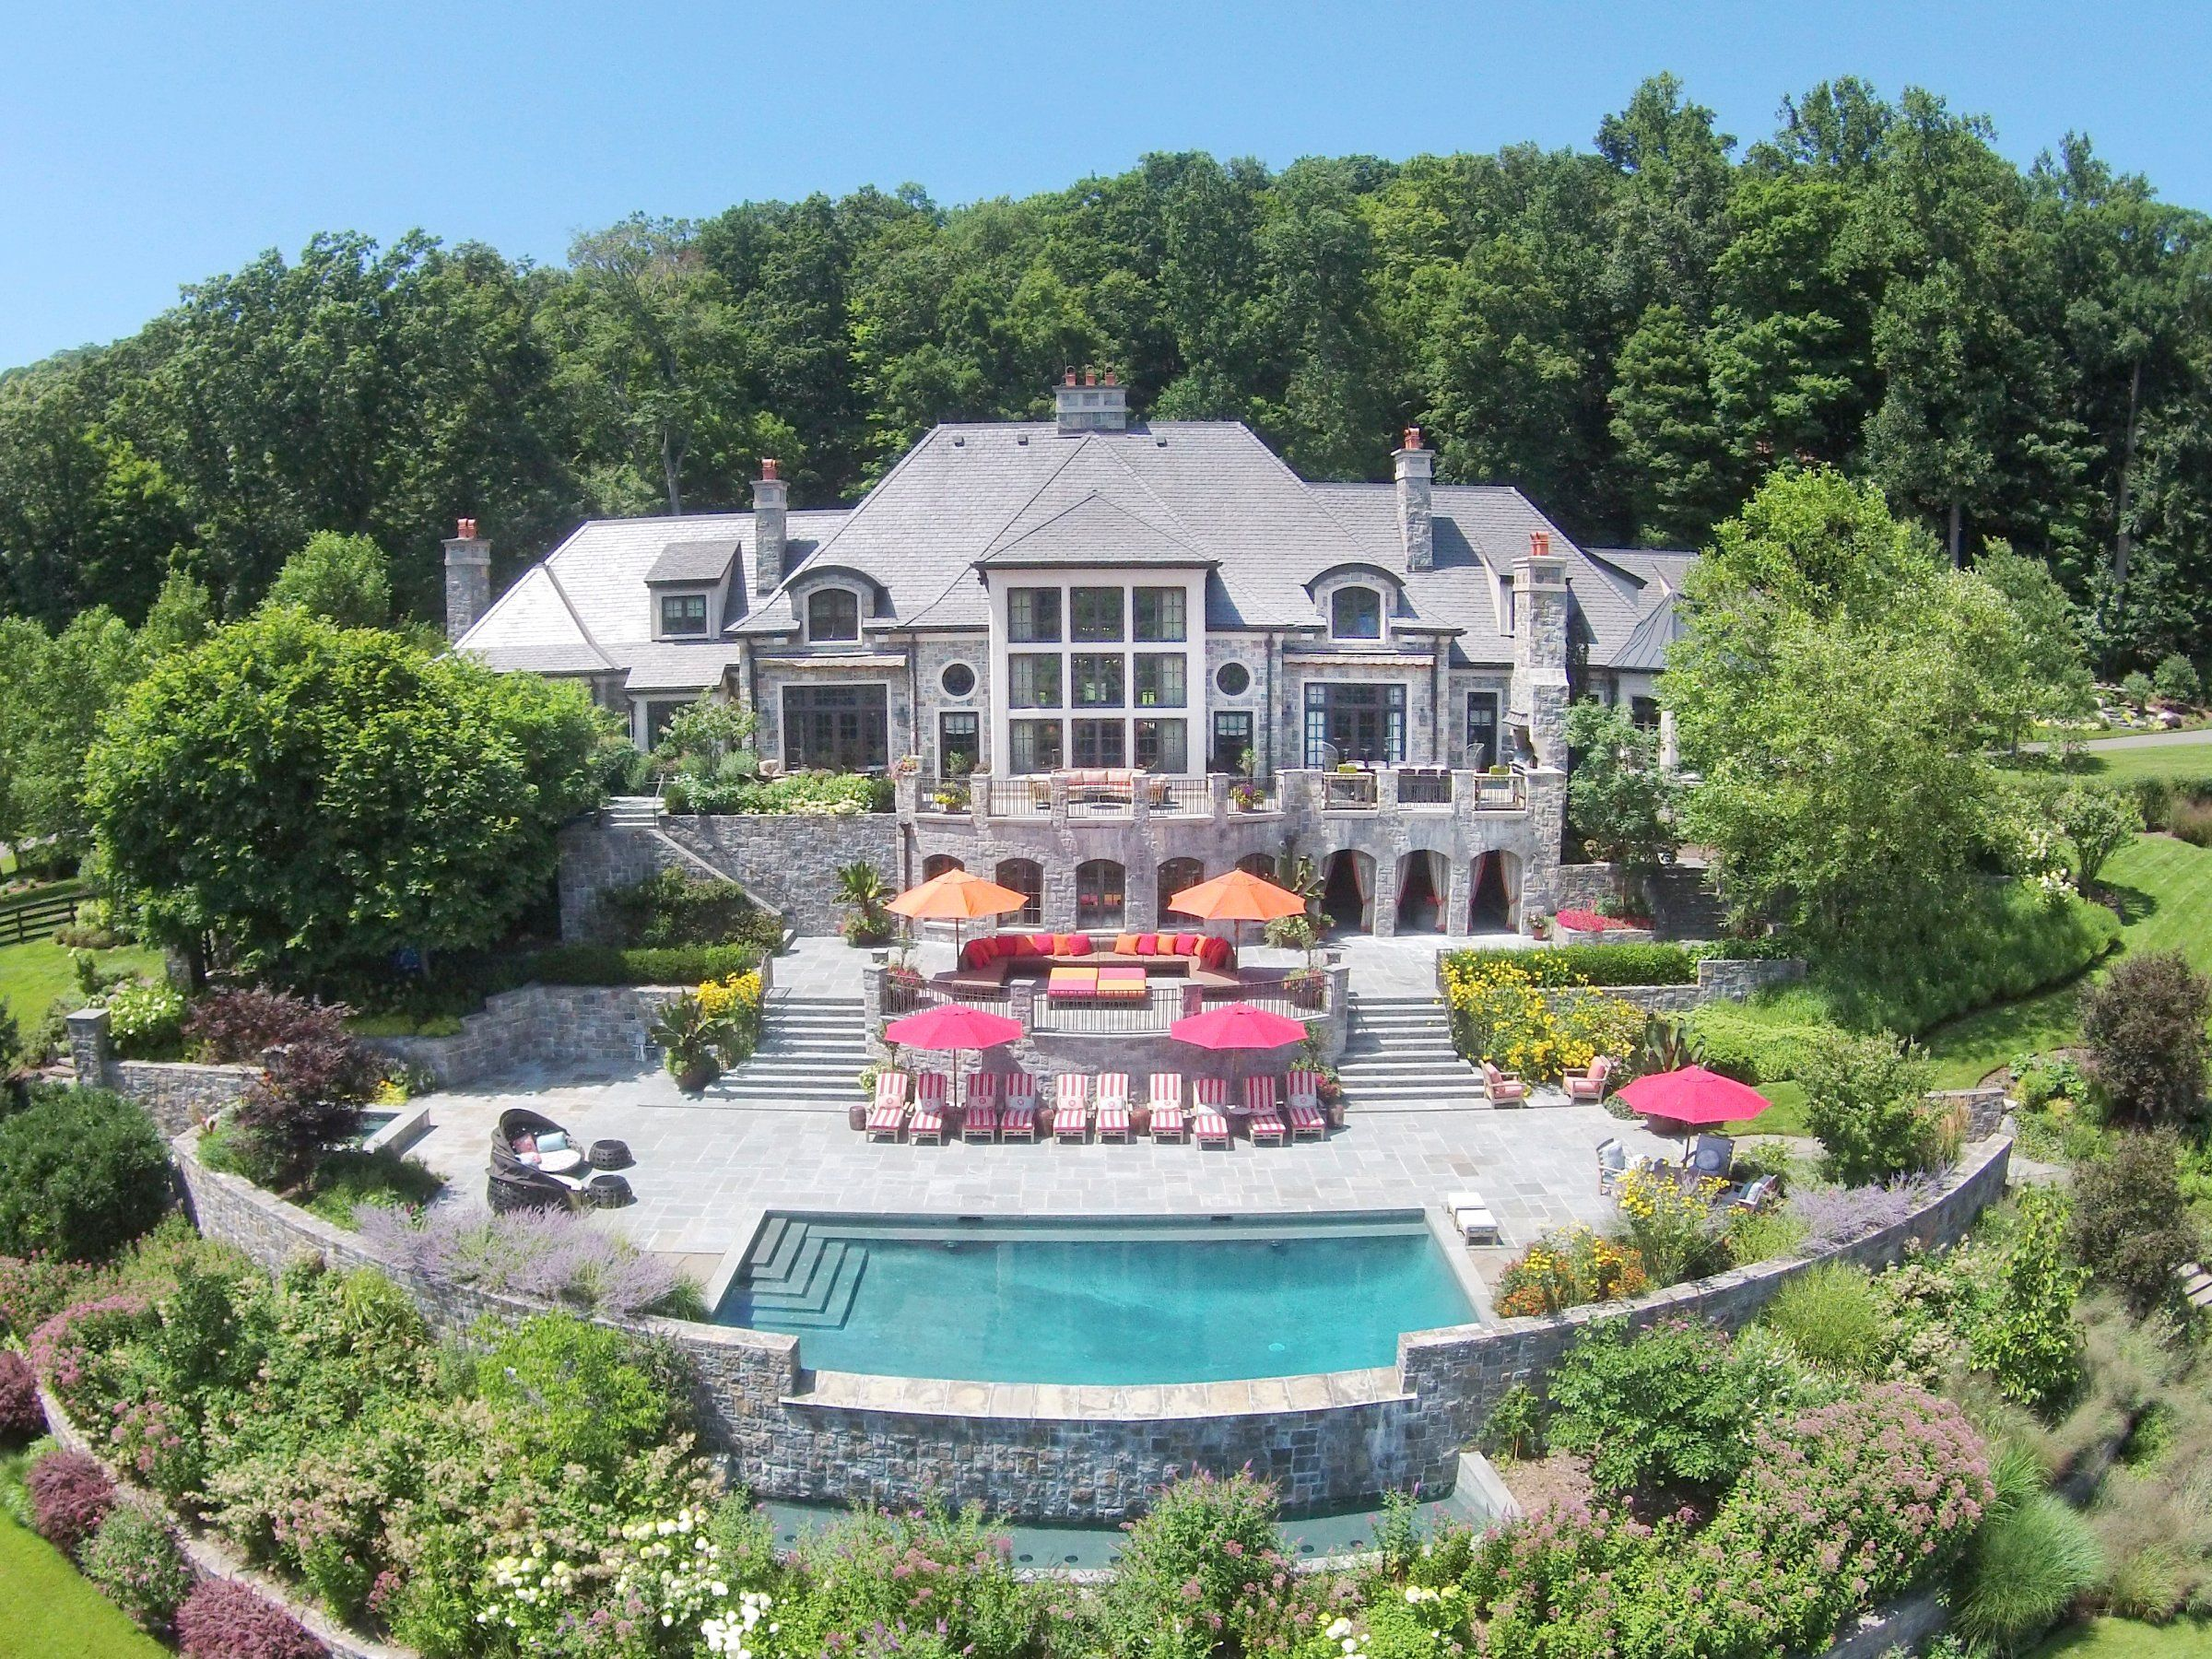 The Most Expensive House For Sale In New Jersey Is A Sprawling 29 5 Million Estate With A Private Expensive Houses Equestrian Estate Expensive Houses For Sale